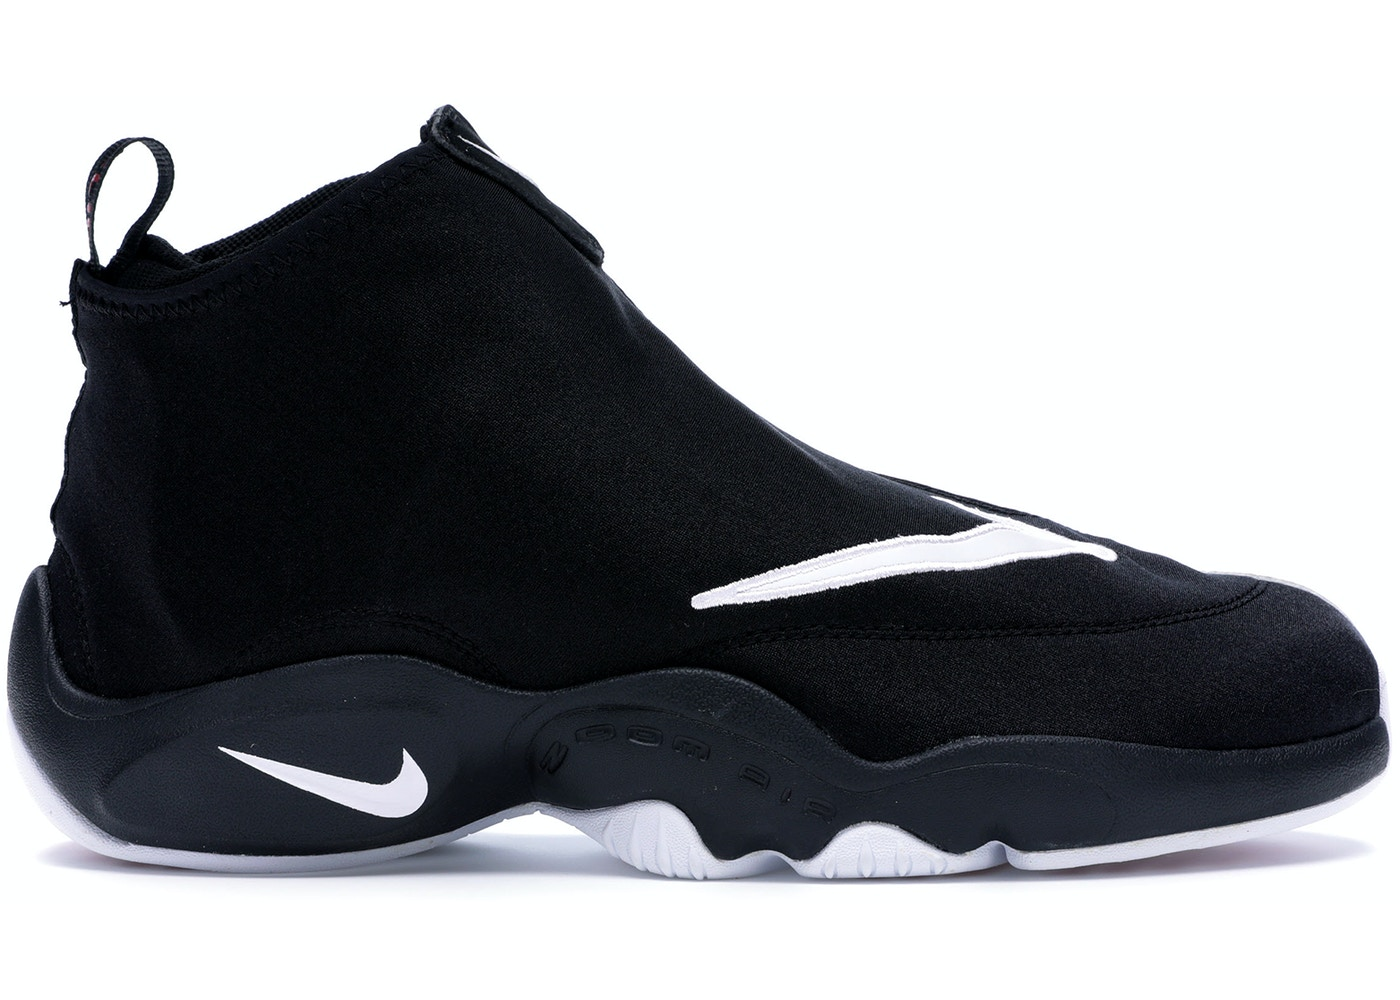 sells cheap prices best authentic Nike Air Zoom Flight '98 The Glove Black/White OG - 616772-001